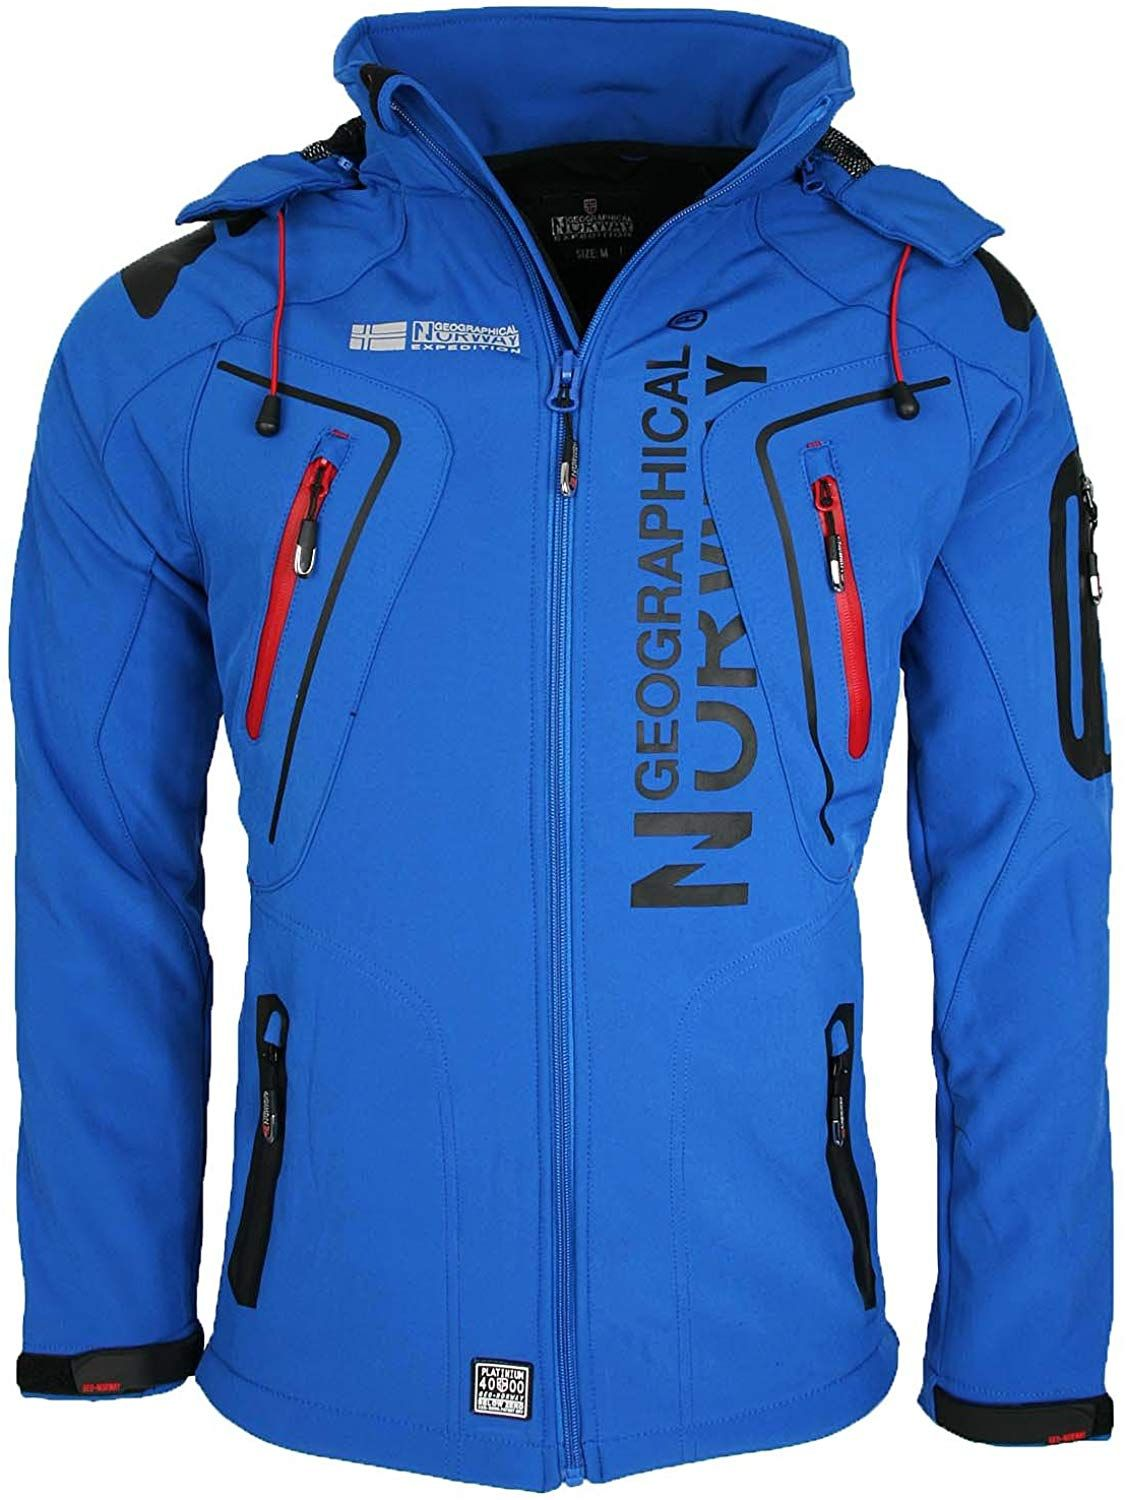 ac40964be15e Geographical Norway Herren Softshell Funktions Outdoor Jacke  wasserabweisend (XXXL, Black)  Amazon.de  Bekleidung